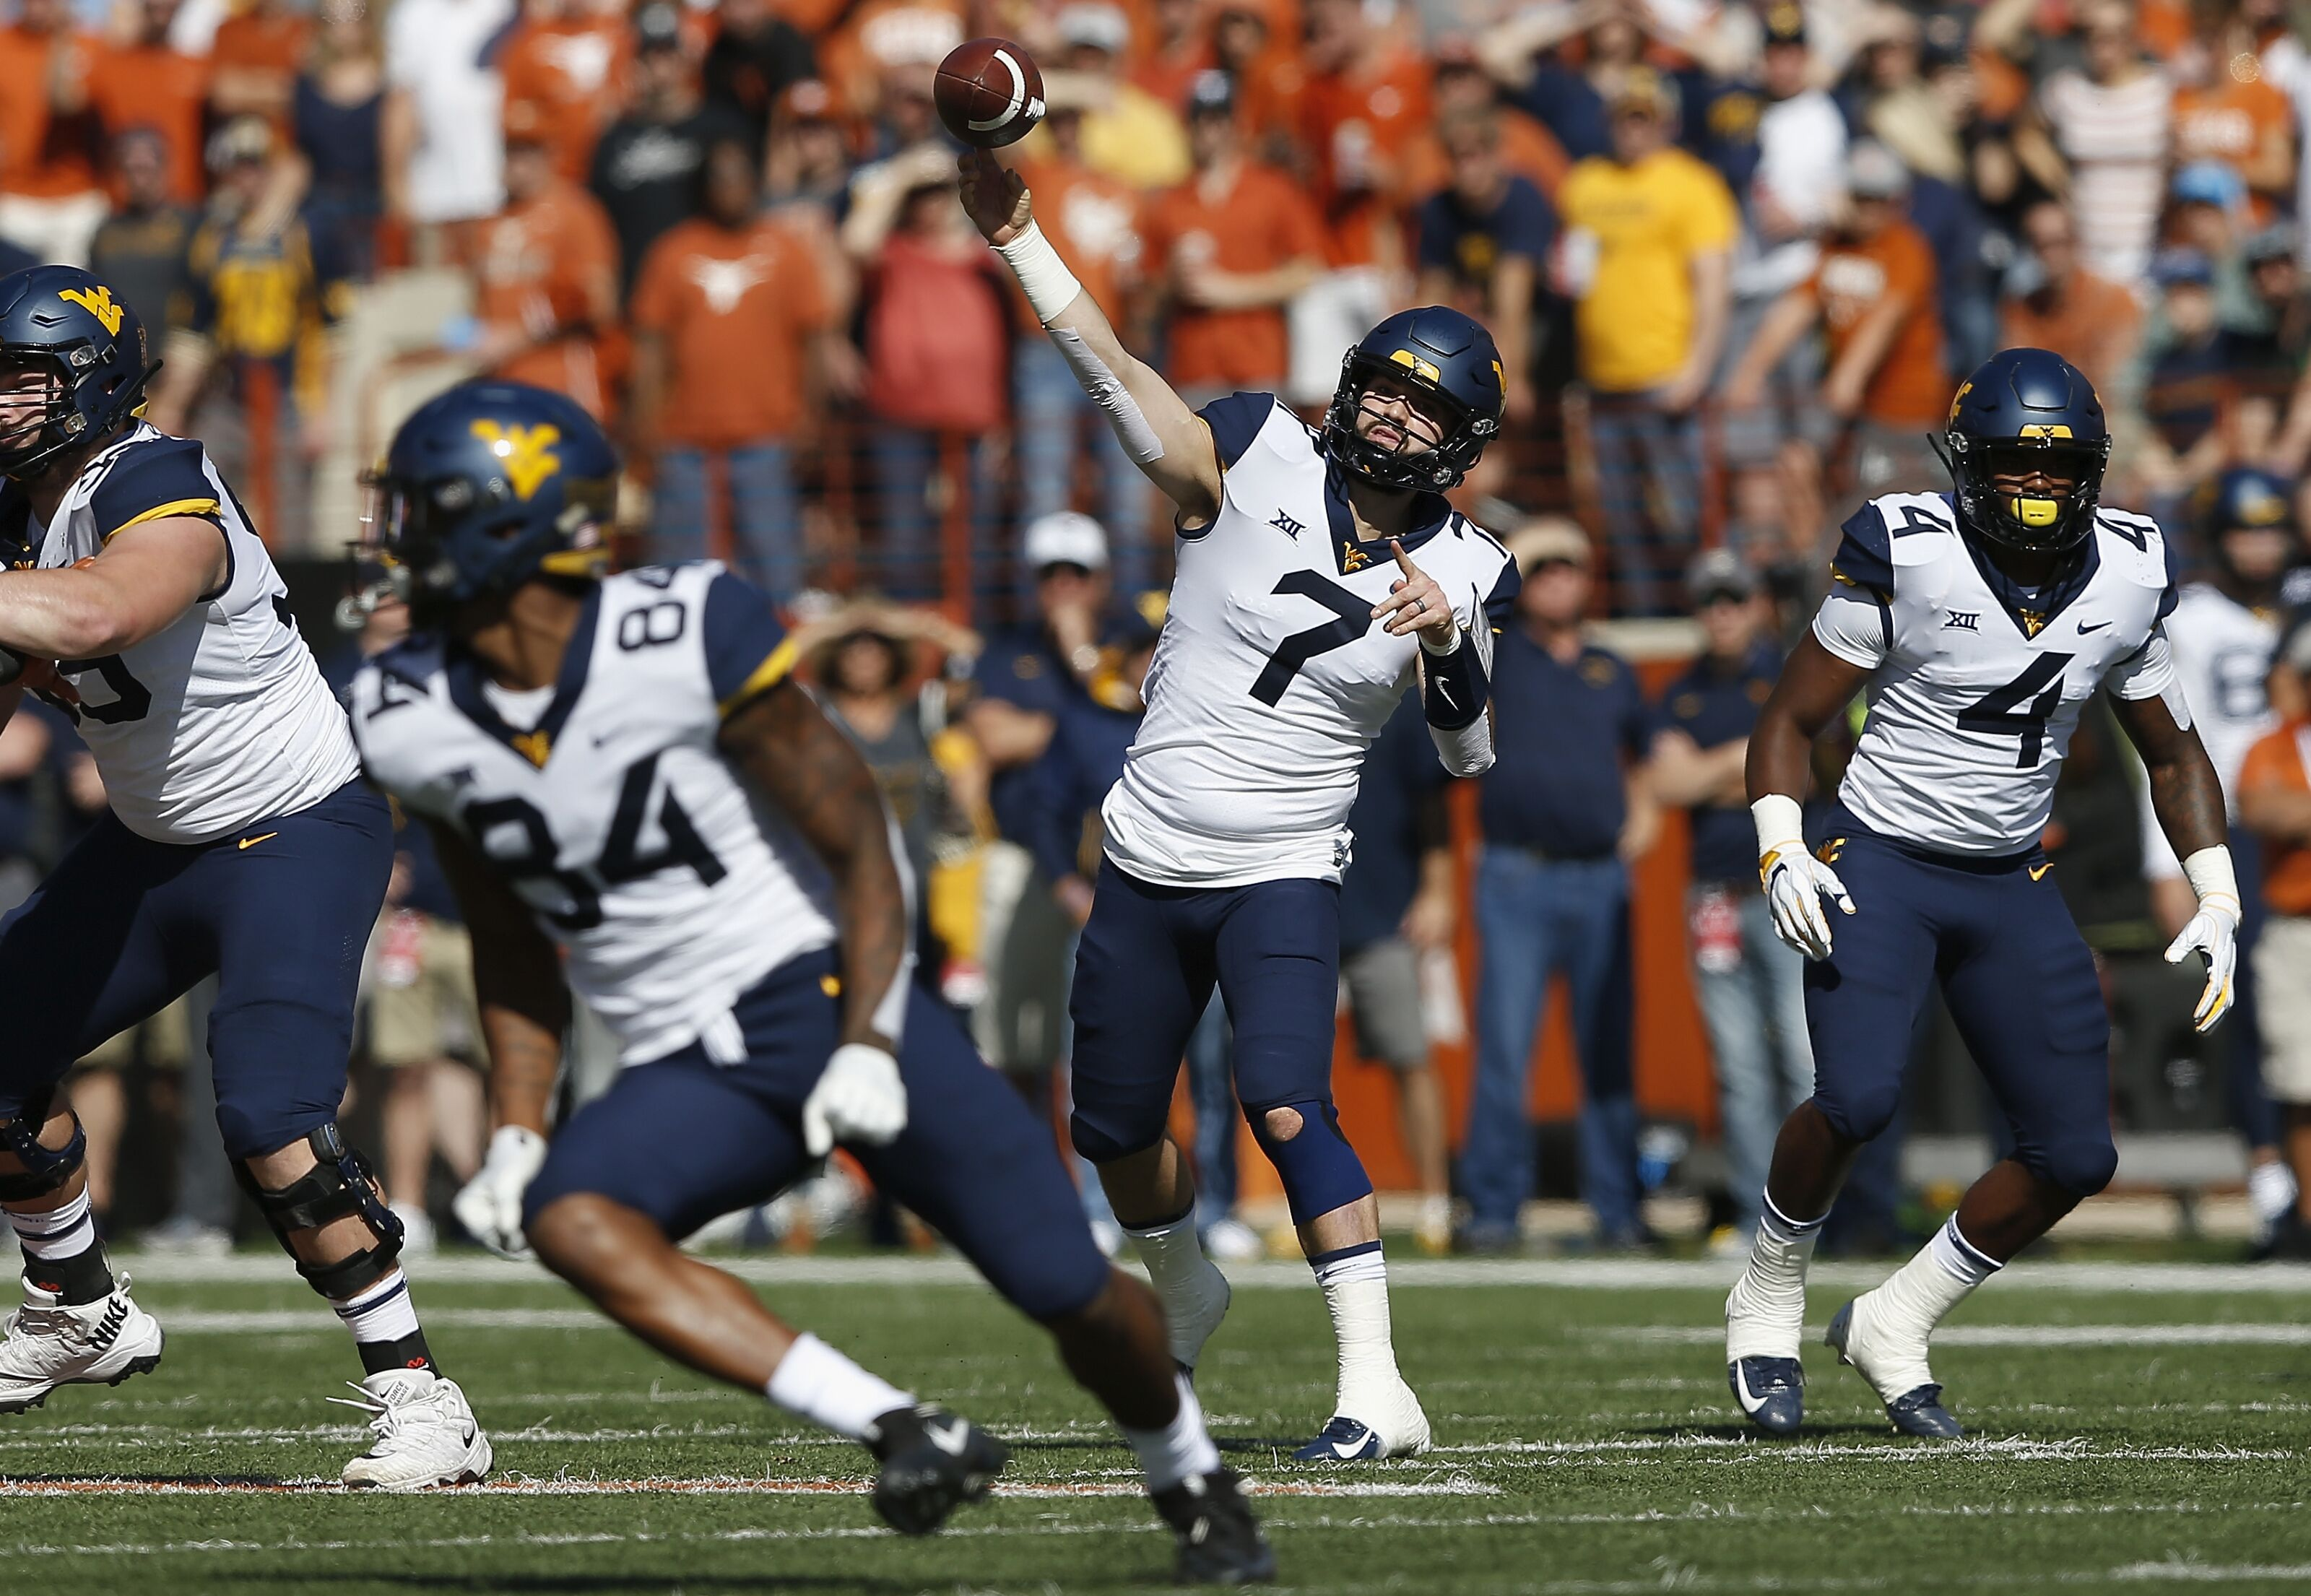 Will Grier delivers Heisman moment to beat Texas